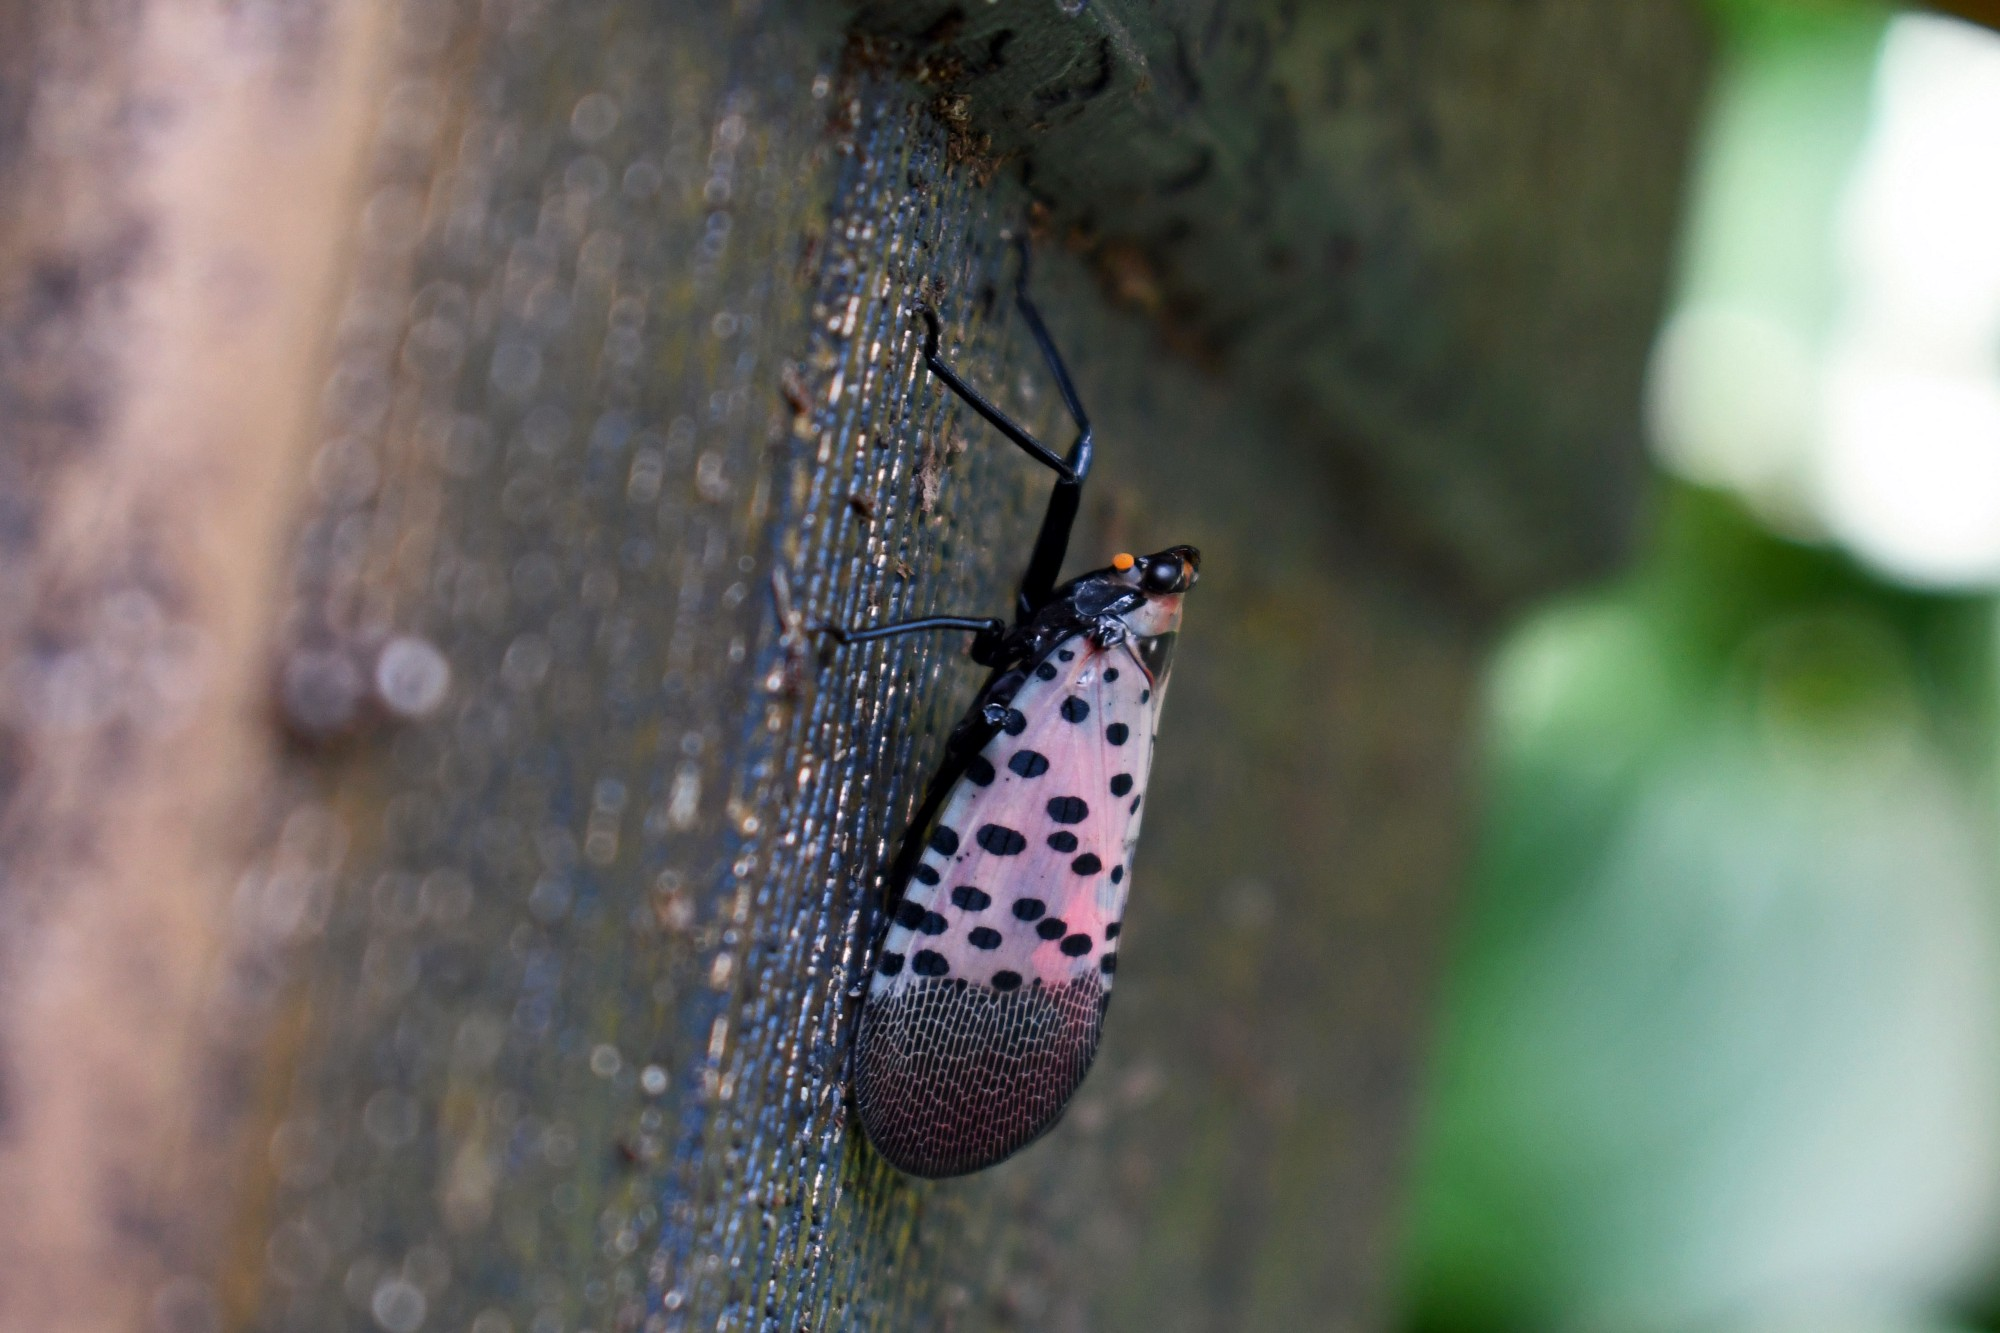 an spotted insect resting on the side of a builting